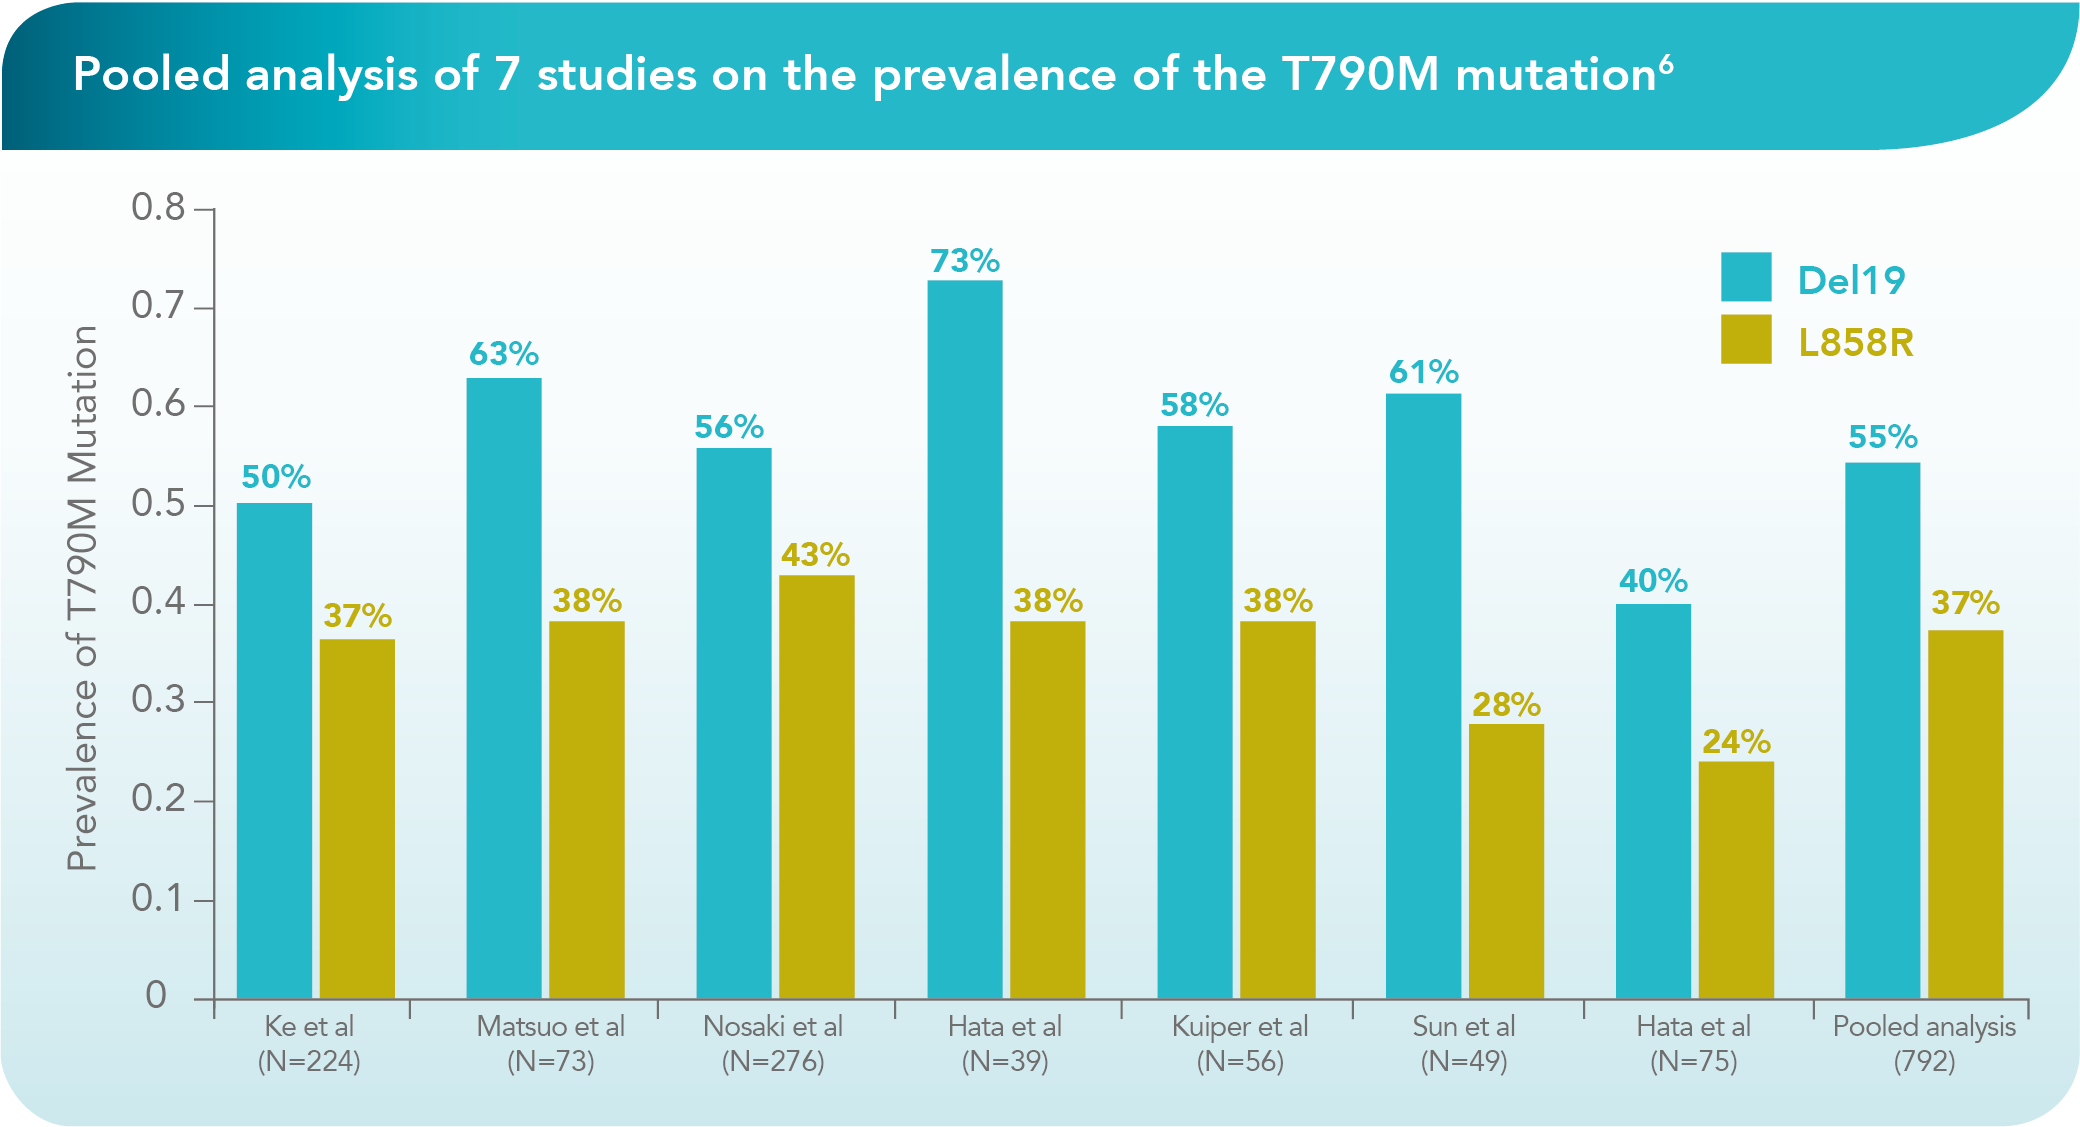 Patients with a del19 mutation, up to 70%, may go on to develop a T790M mutation